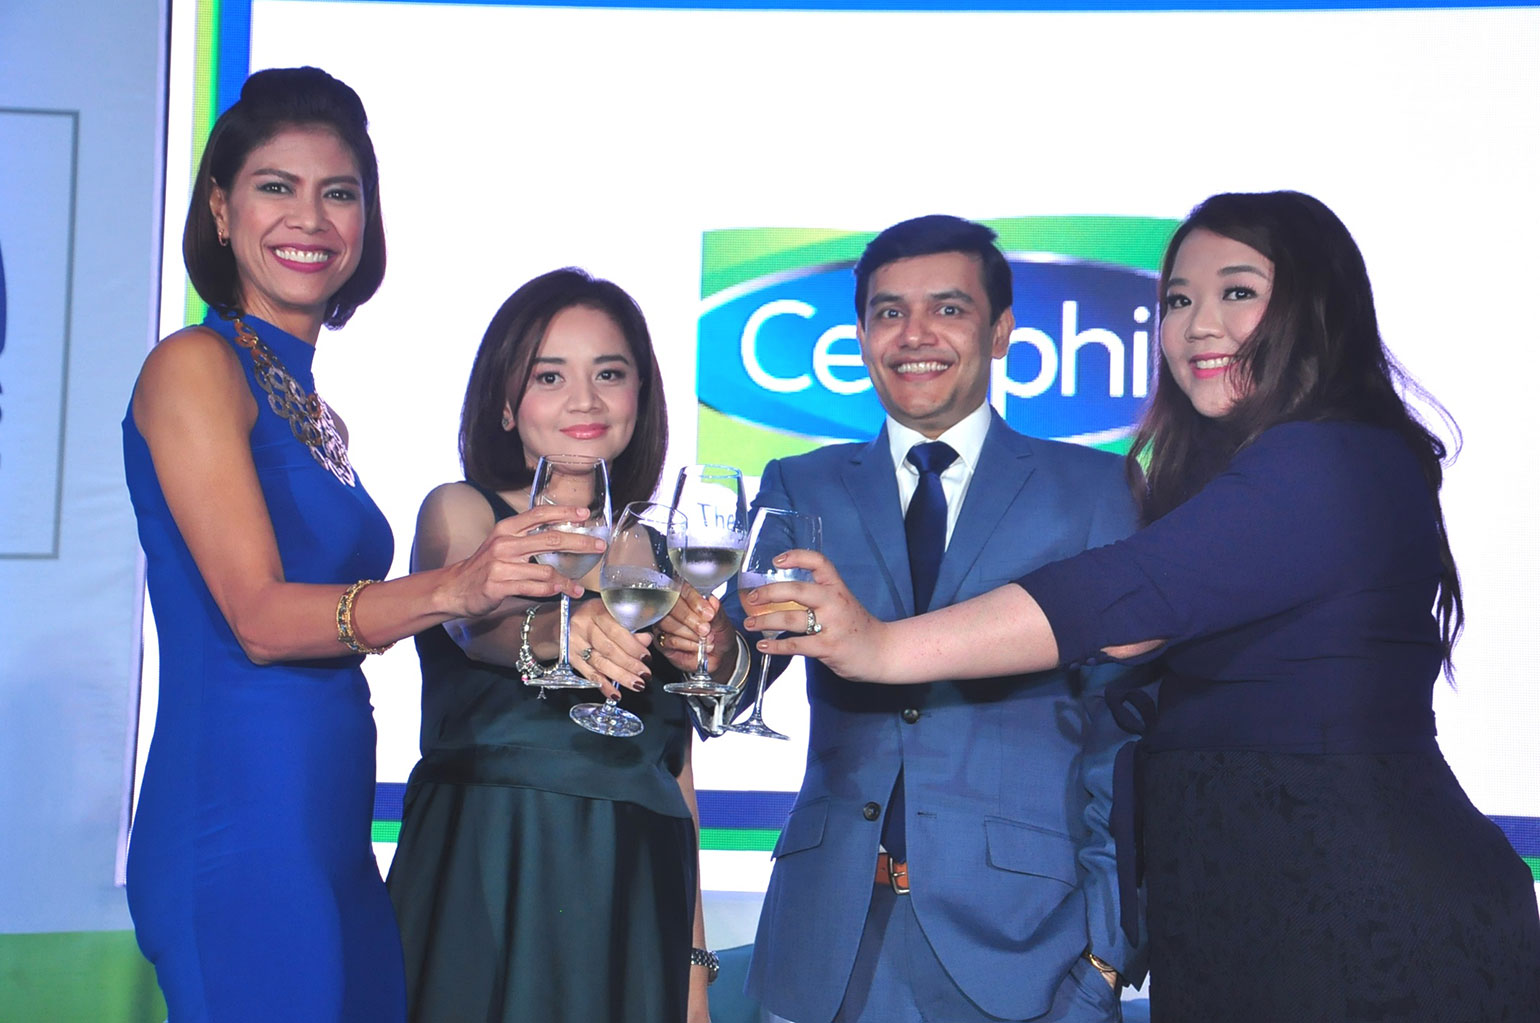 7 Celebratory-toast-of-Galderma's-70th-anniversary-with-hosty-Suzi-Entrata,-Galderma-General-Manager-Jade-Silva-Netto-Ponoc-Galderma-Business-Unit-Head-for-Consumer-and-Catherine-Palma-Dilanco-Cetaphil-Senior-Brand-Manager